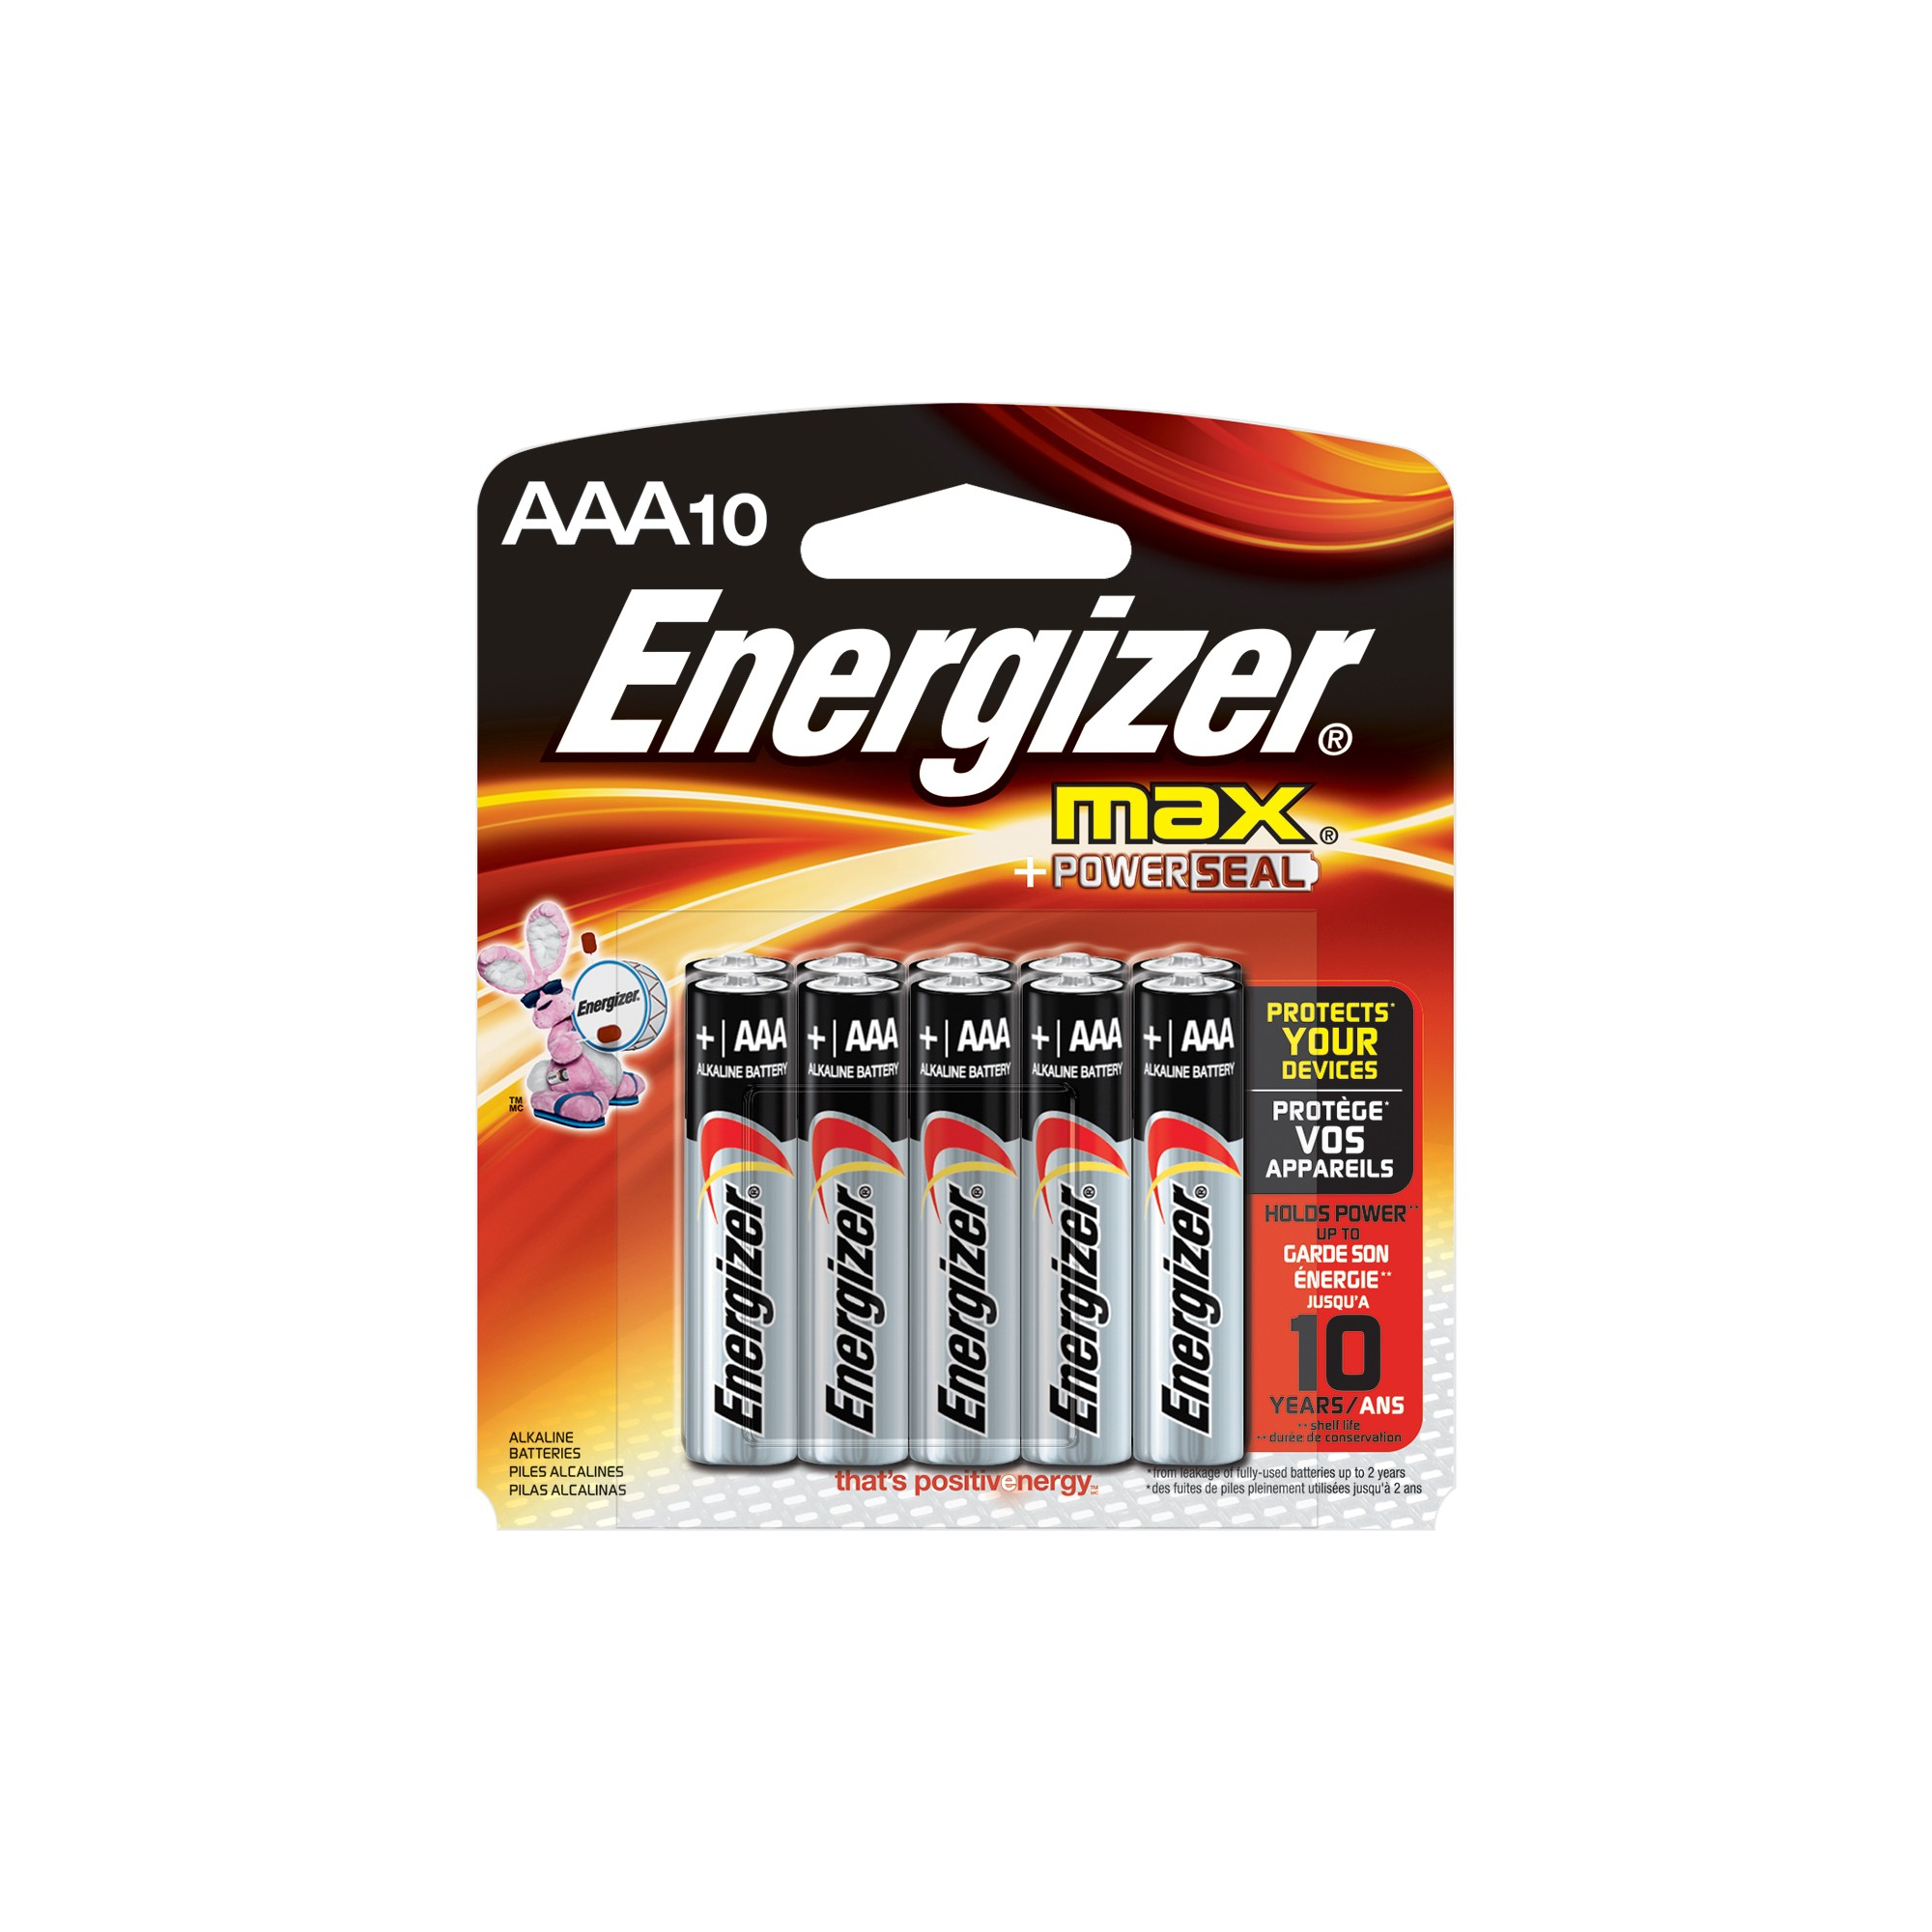 Energizer Max AAA Batteries 10 ct, Silver Alkaline battery